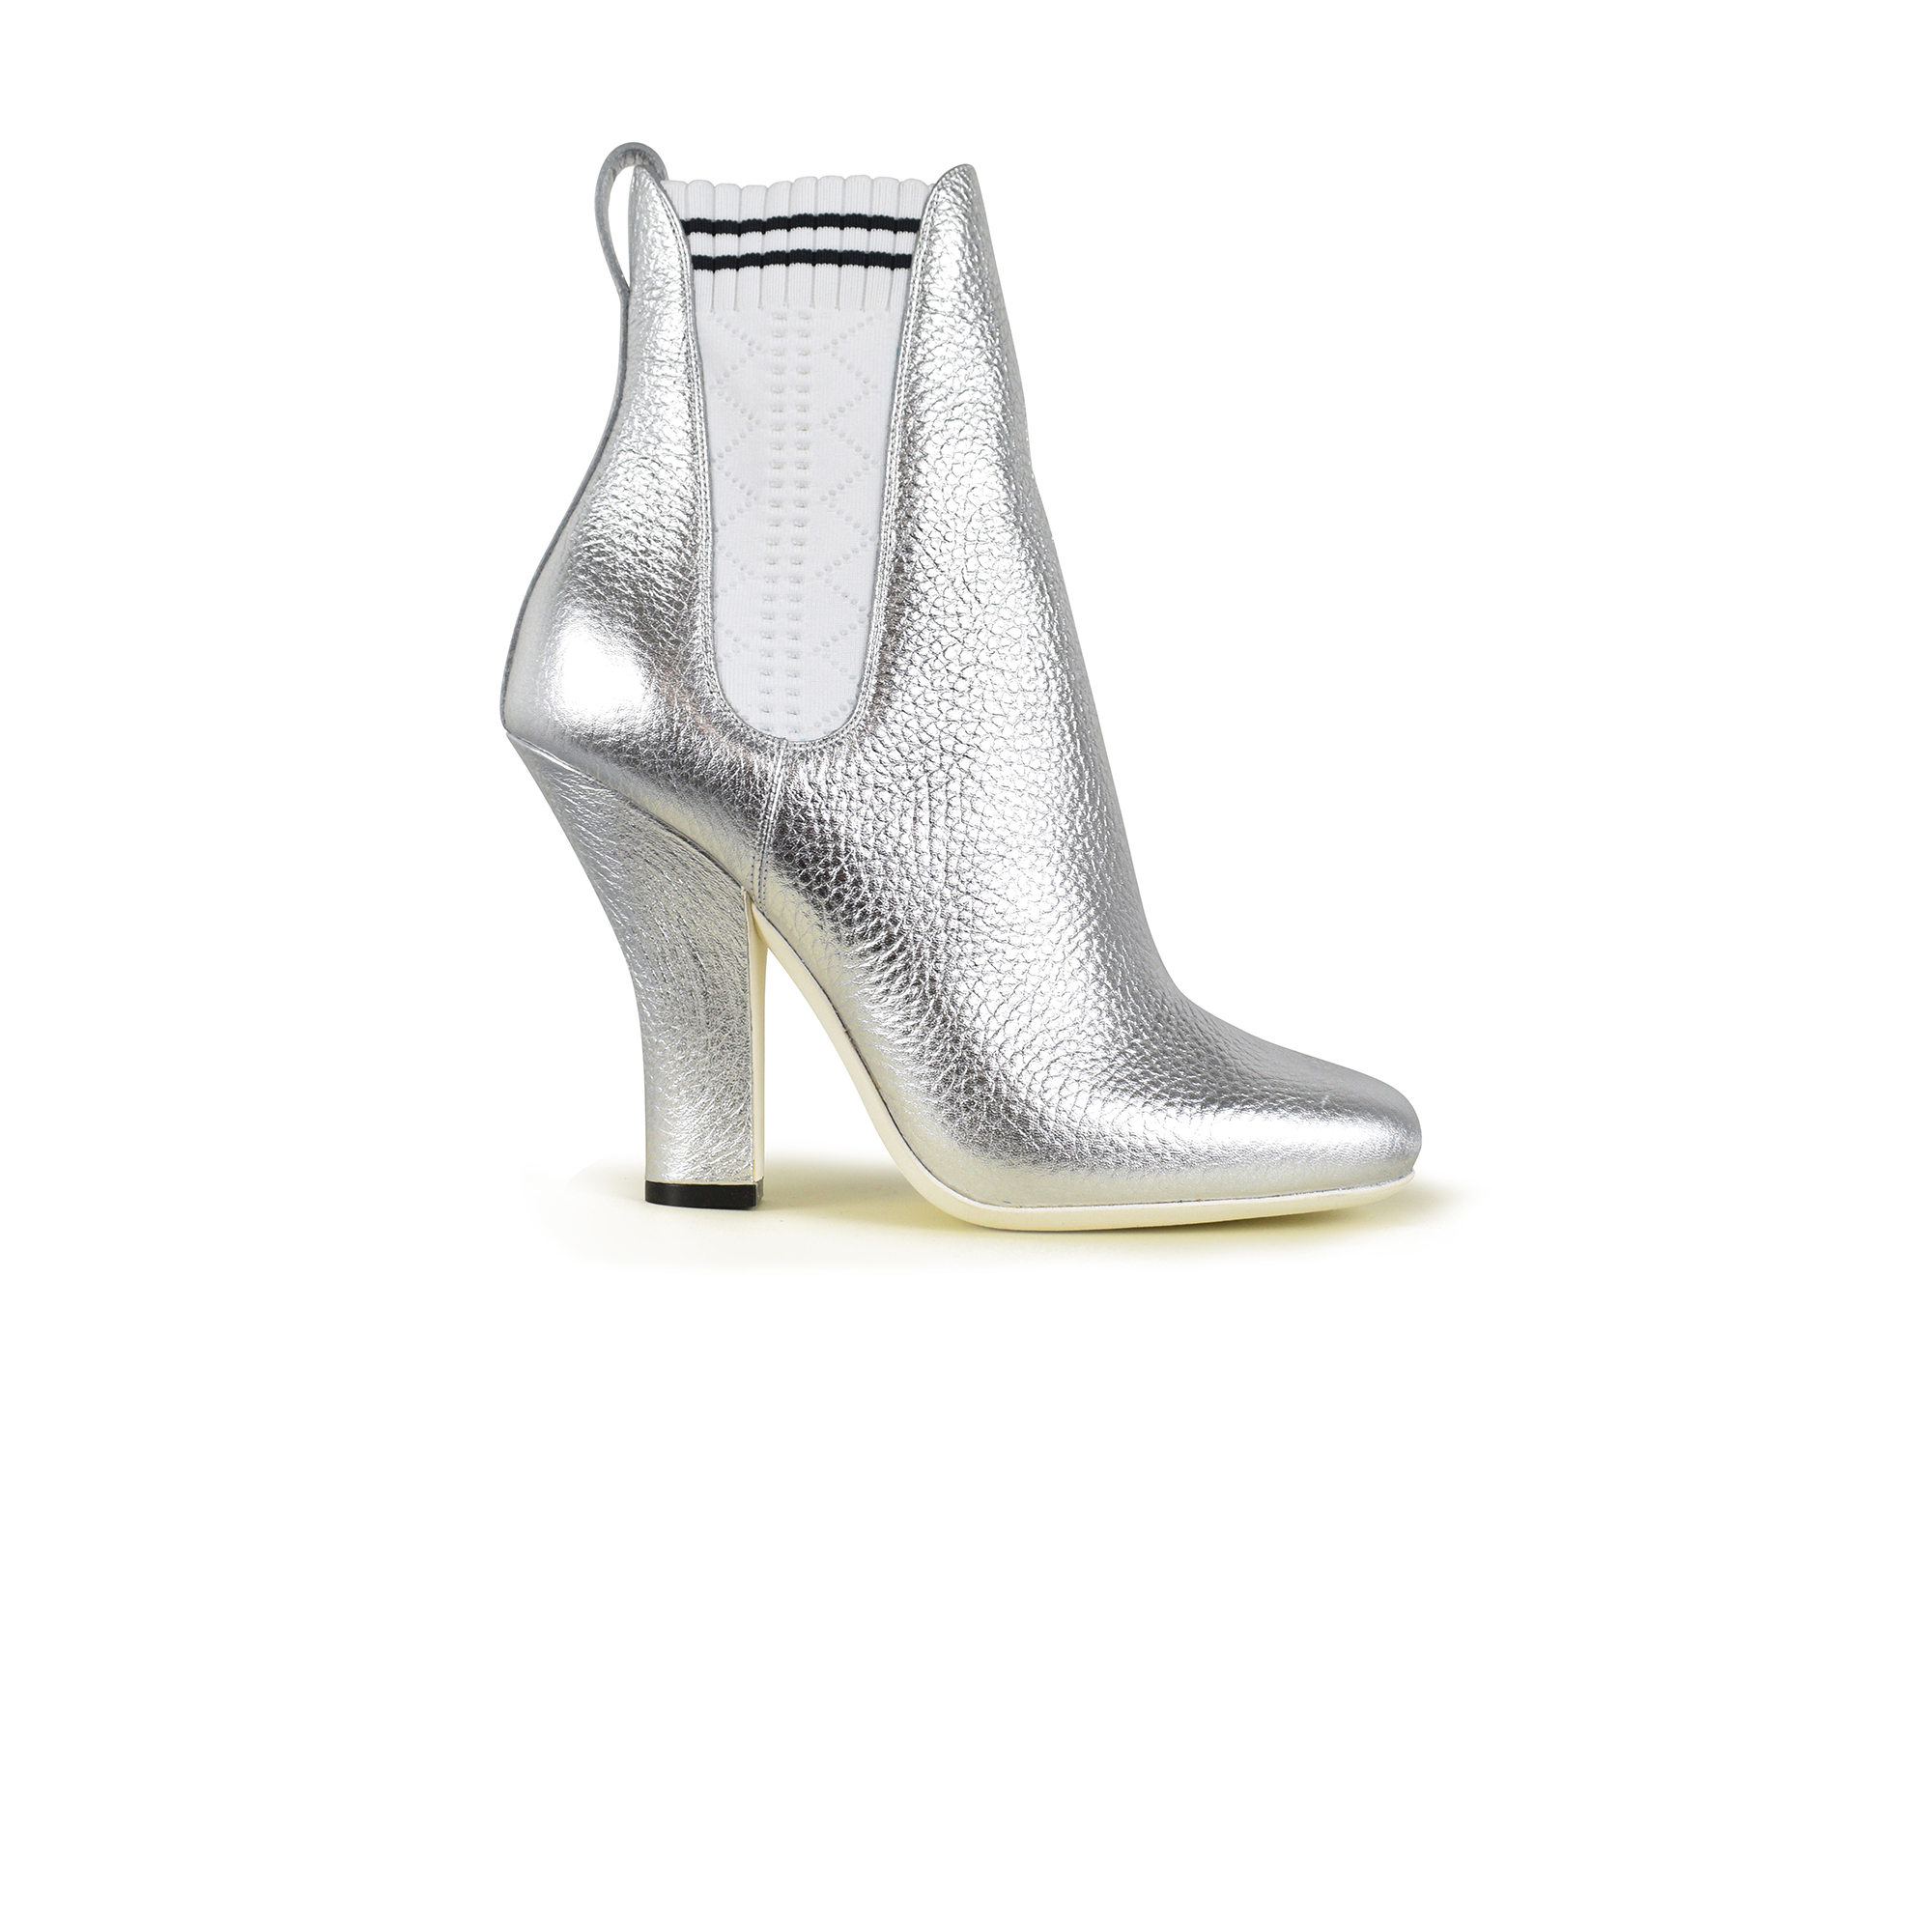 Fendi silver leather ankle boots